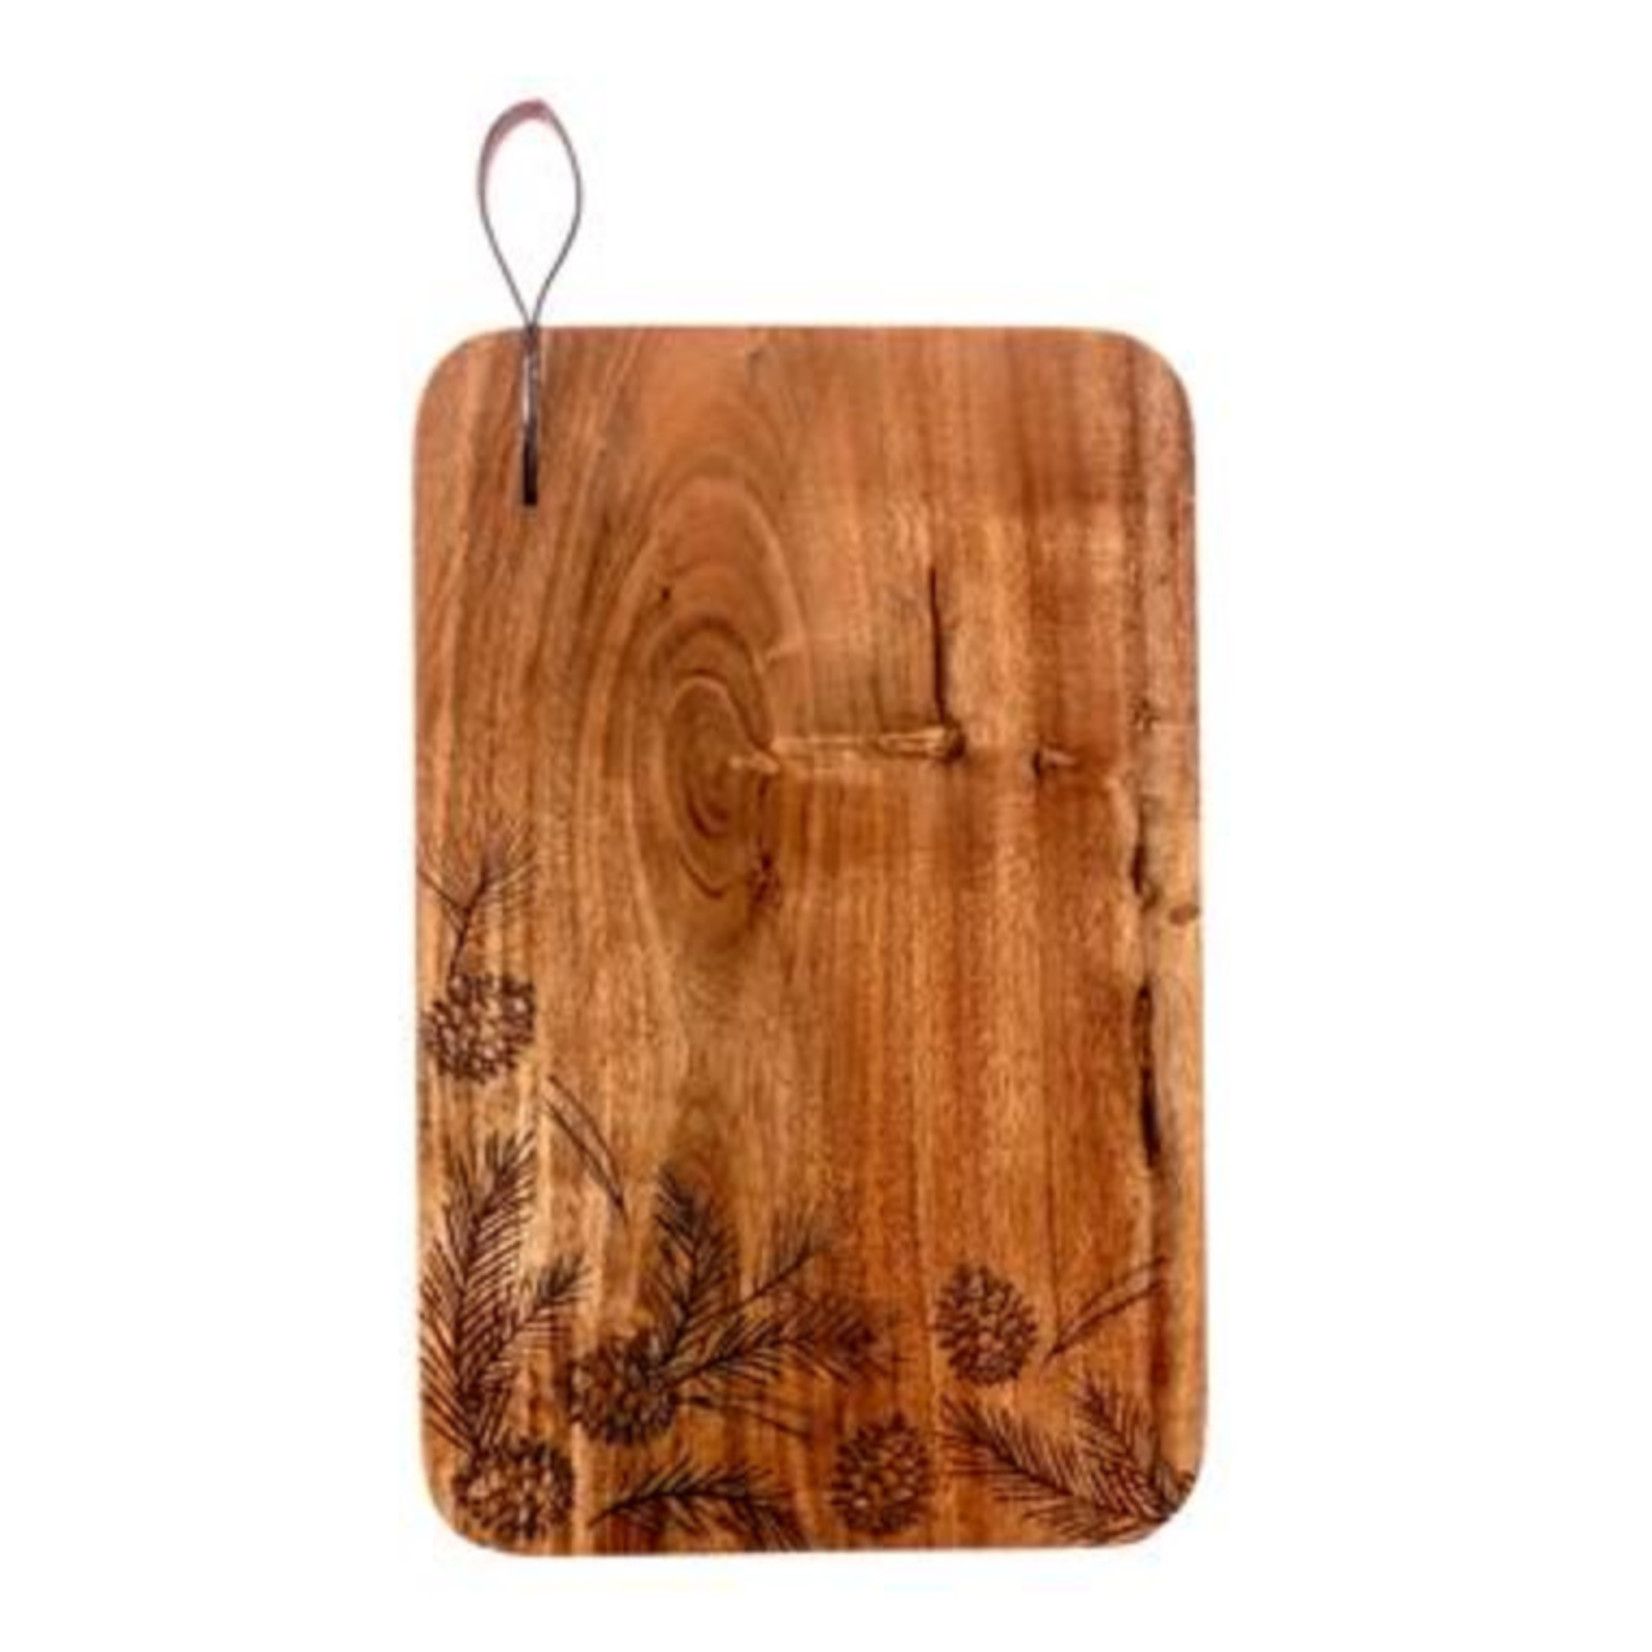 Karma Holiday Etched Cutting Board Pinecone